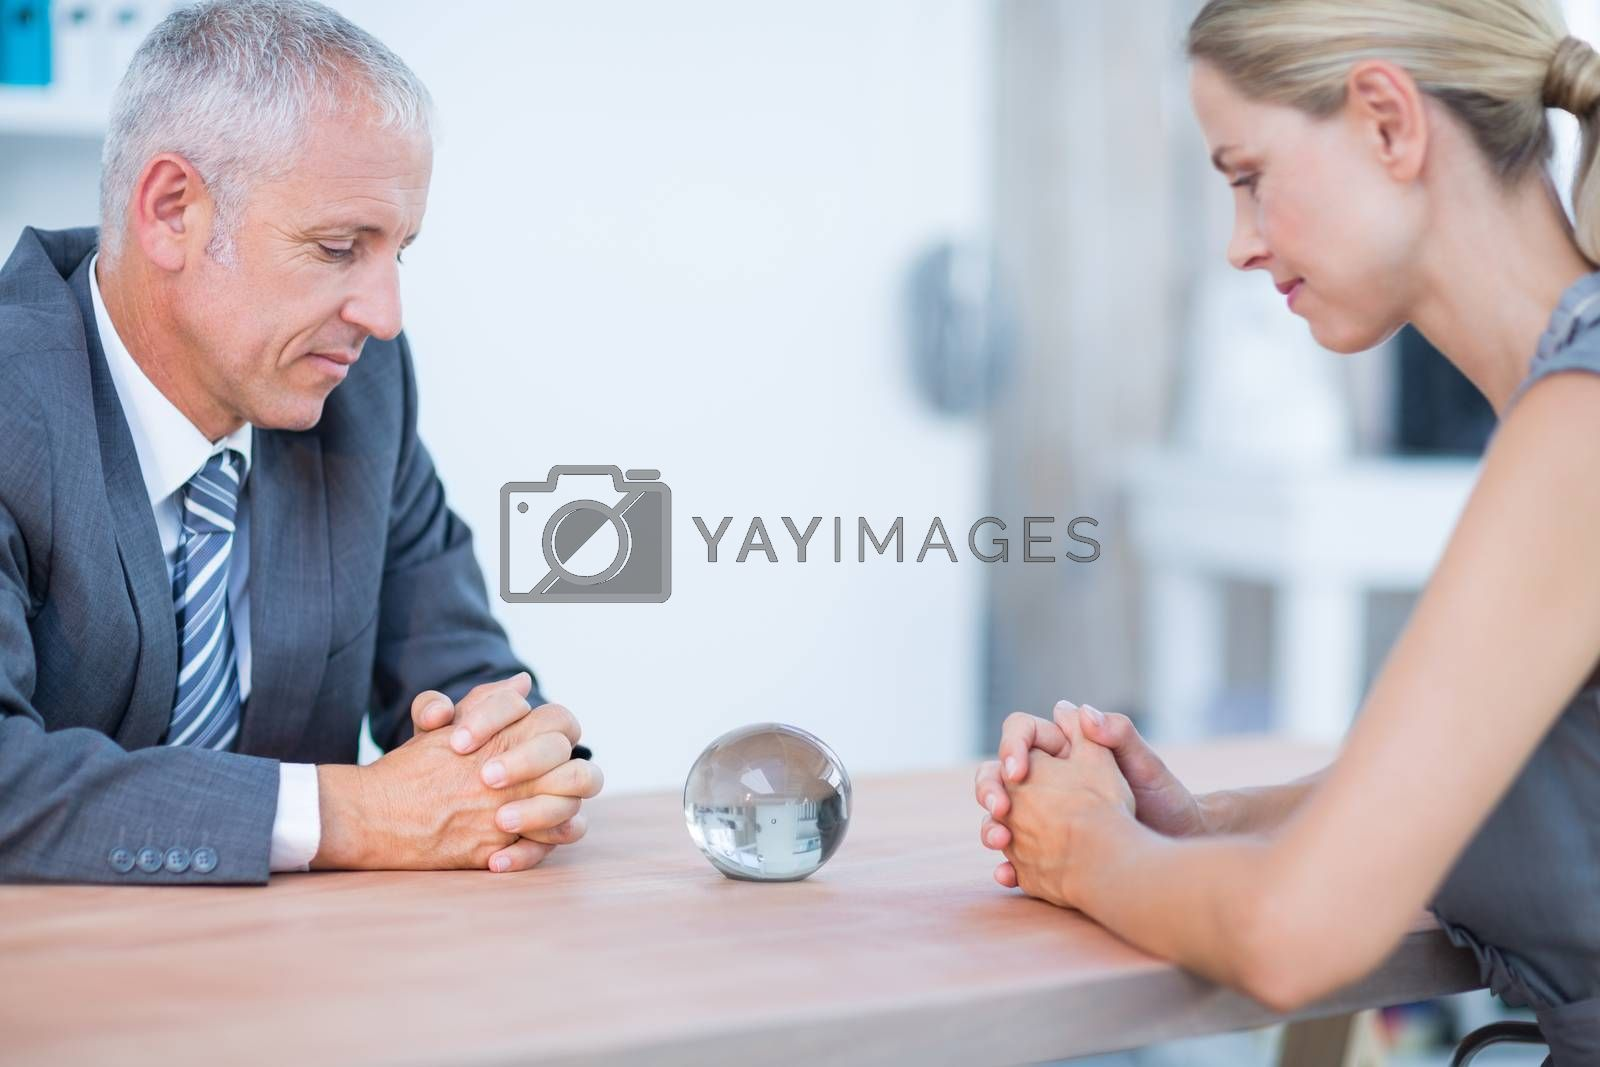 Royalty free image of Two business people thinking with a crystal ball  by Wavebreakmedia